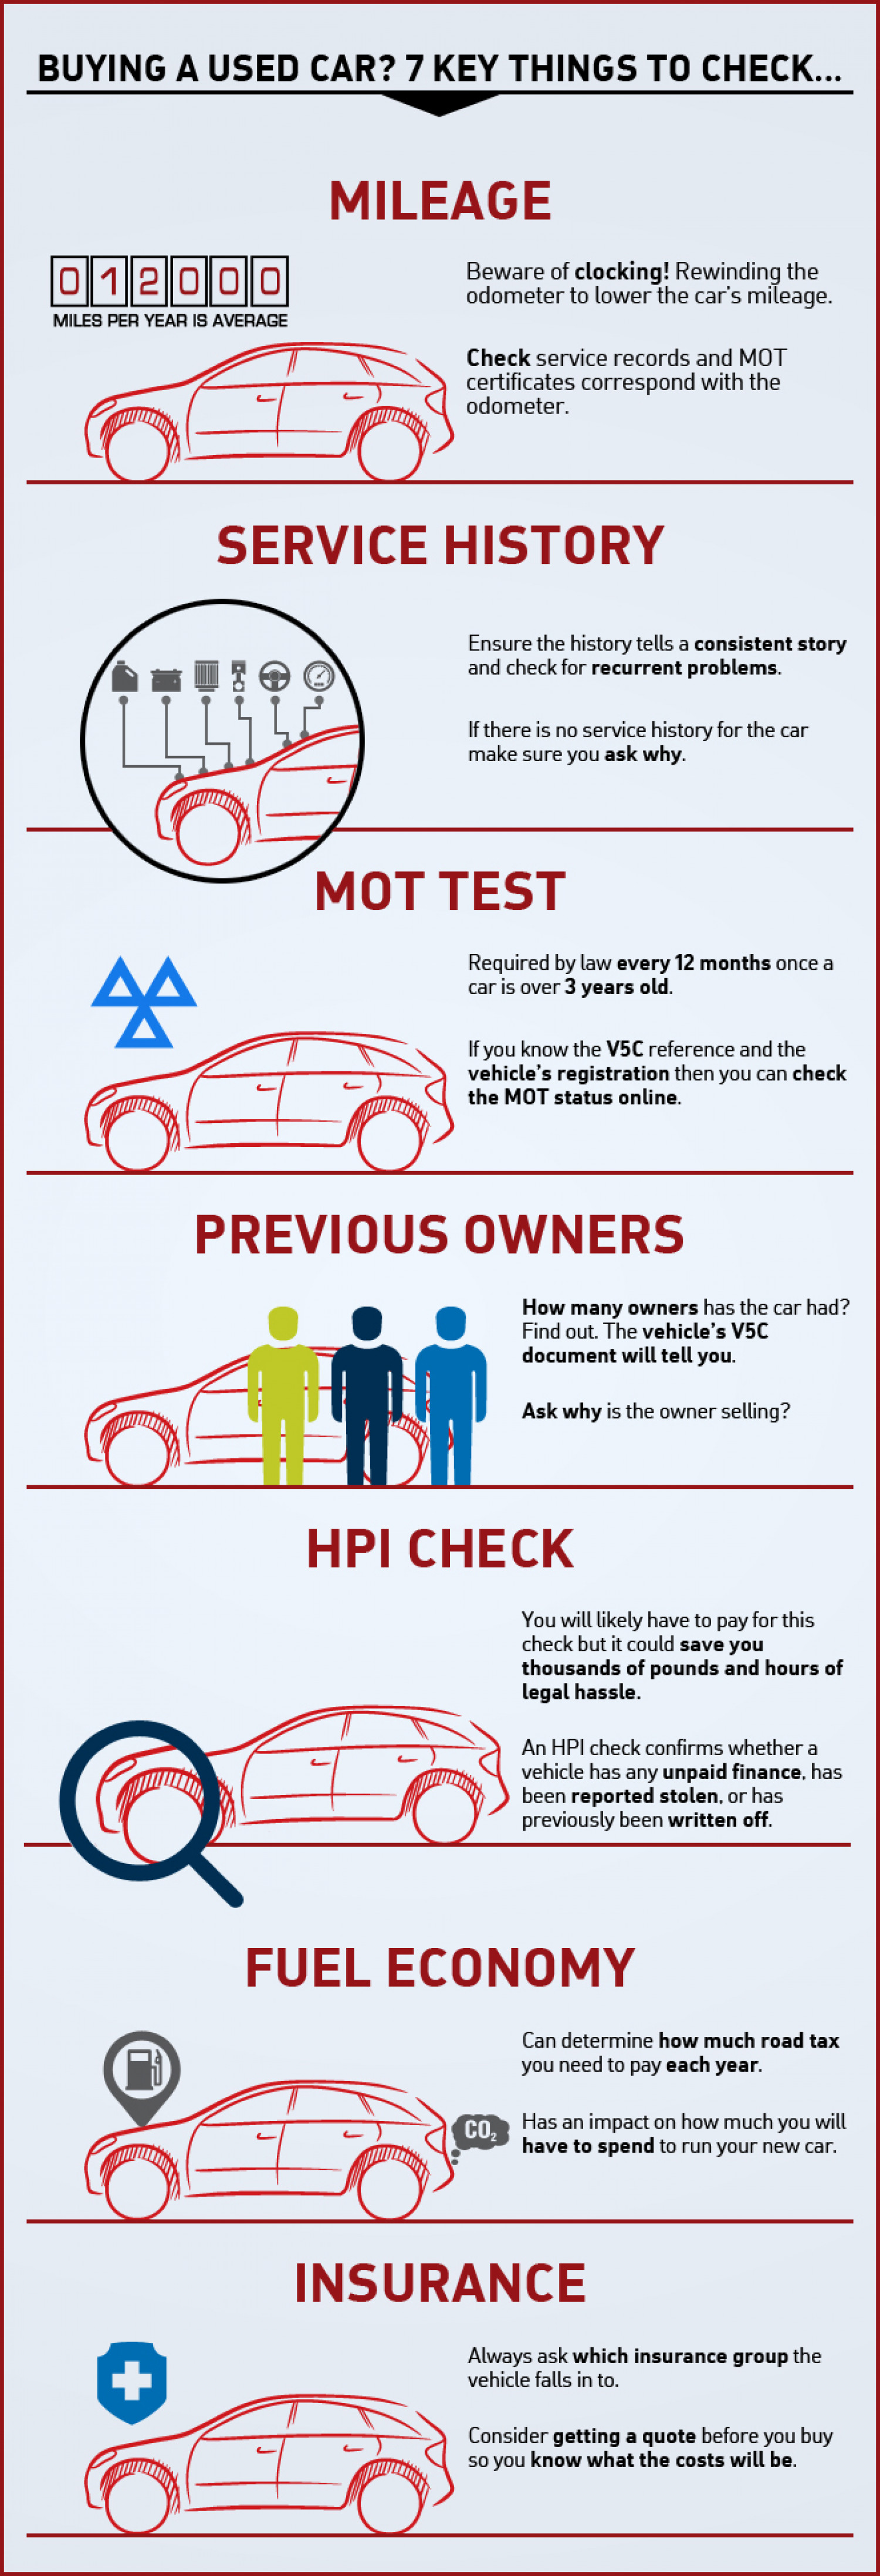 Buying A Used Car? 7 Things To Check... Infographic